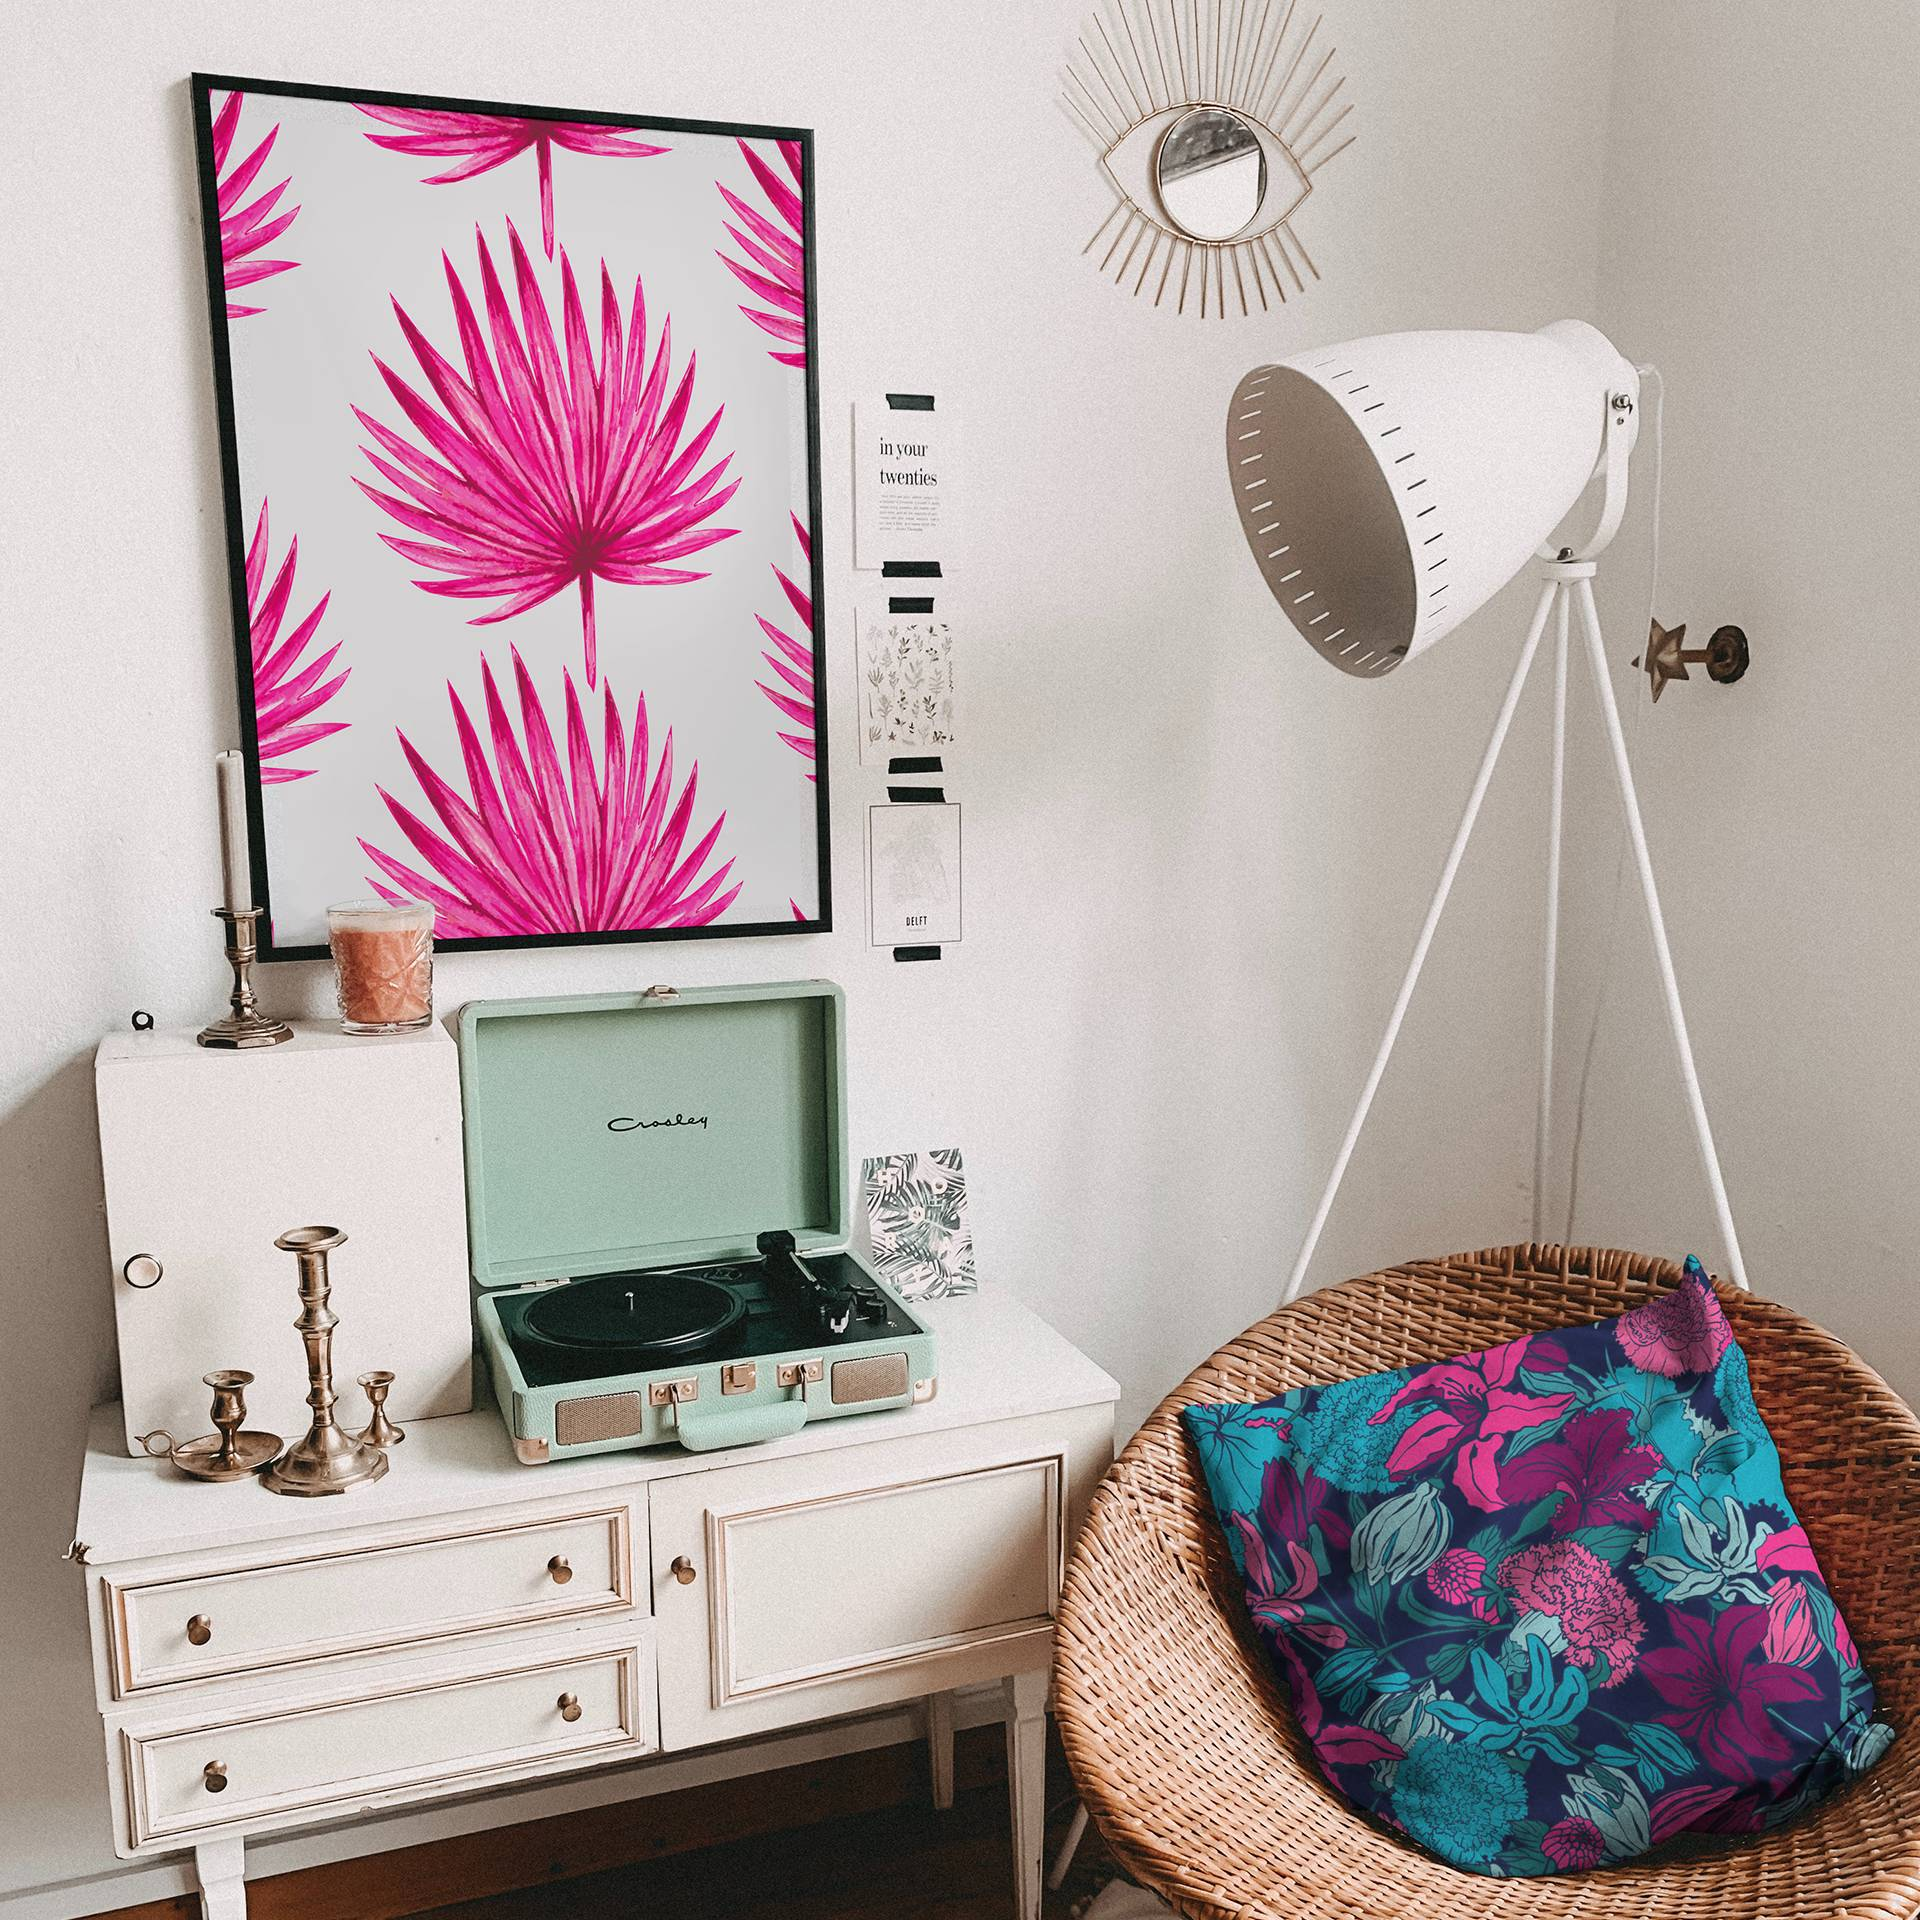 Pink Paradise Glamour Living Room Bedroom Eclectic Posters Nature Flowers And Plants Watercolours Pillows Art Lifestyle